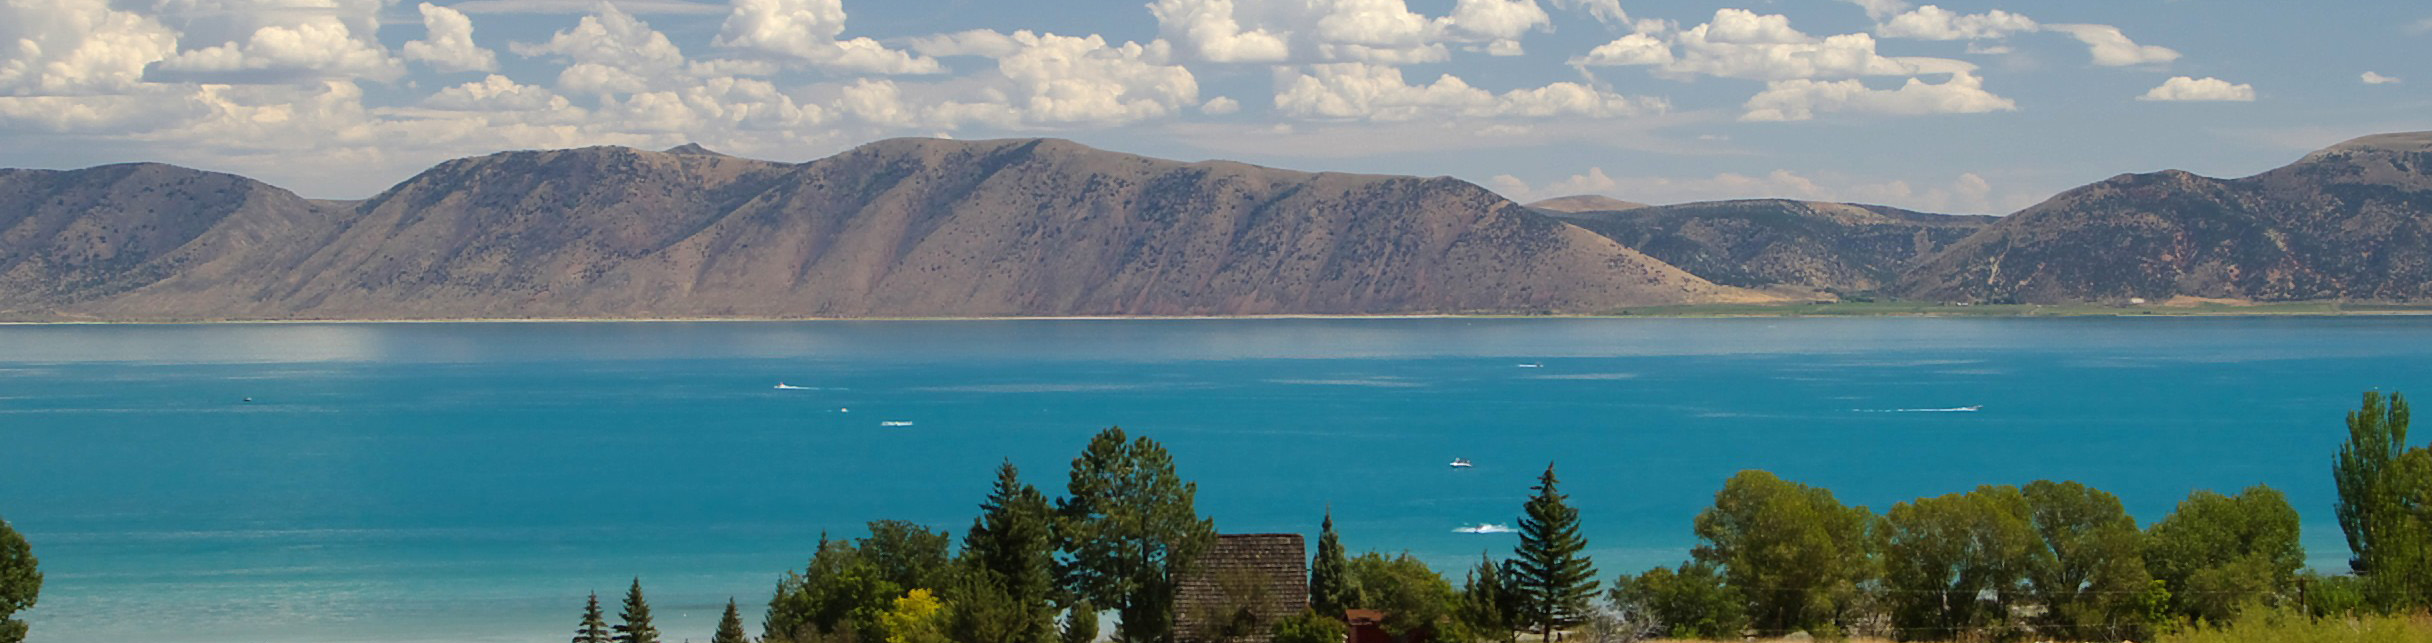 Bear lake image from wikipedia